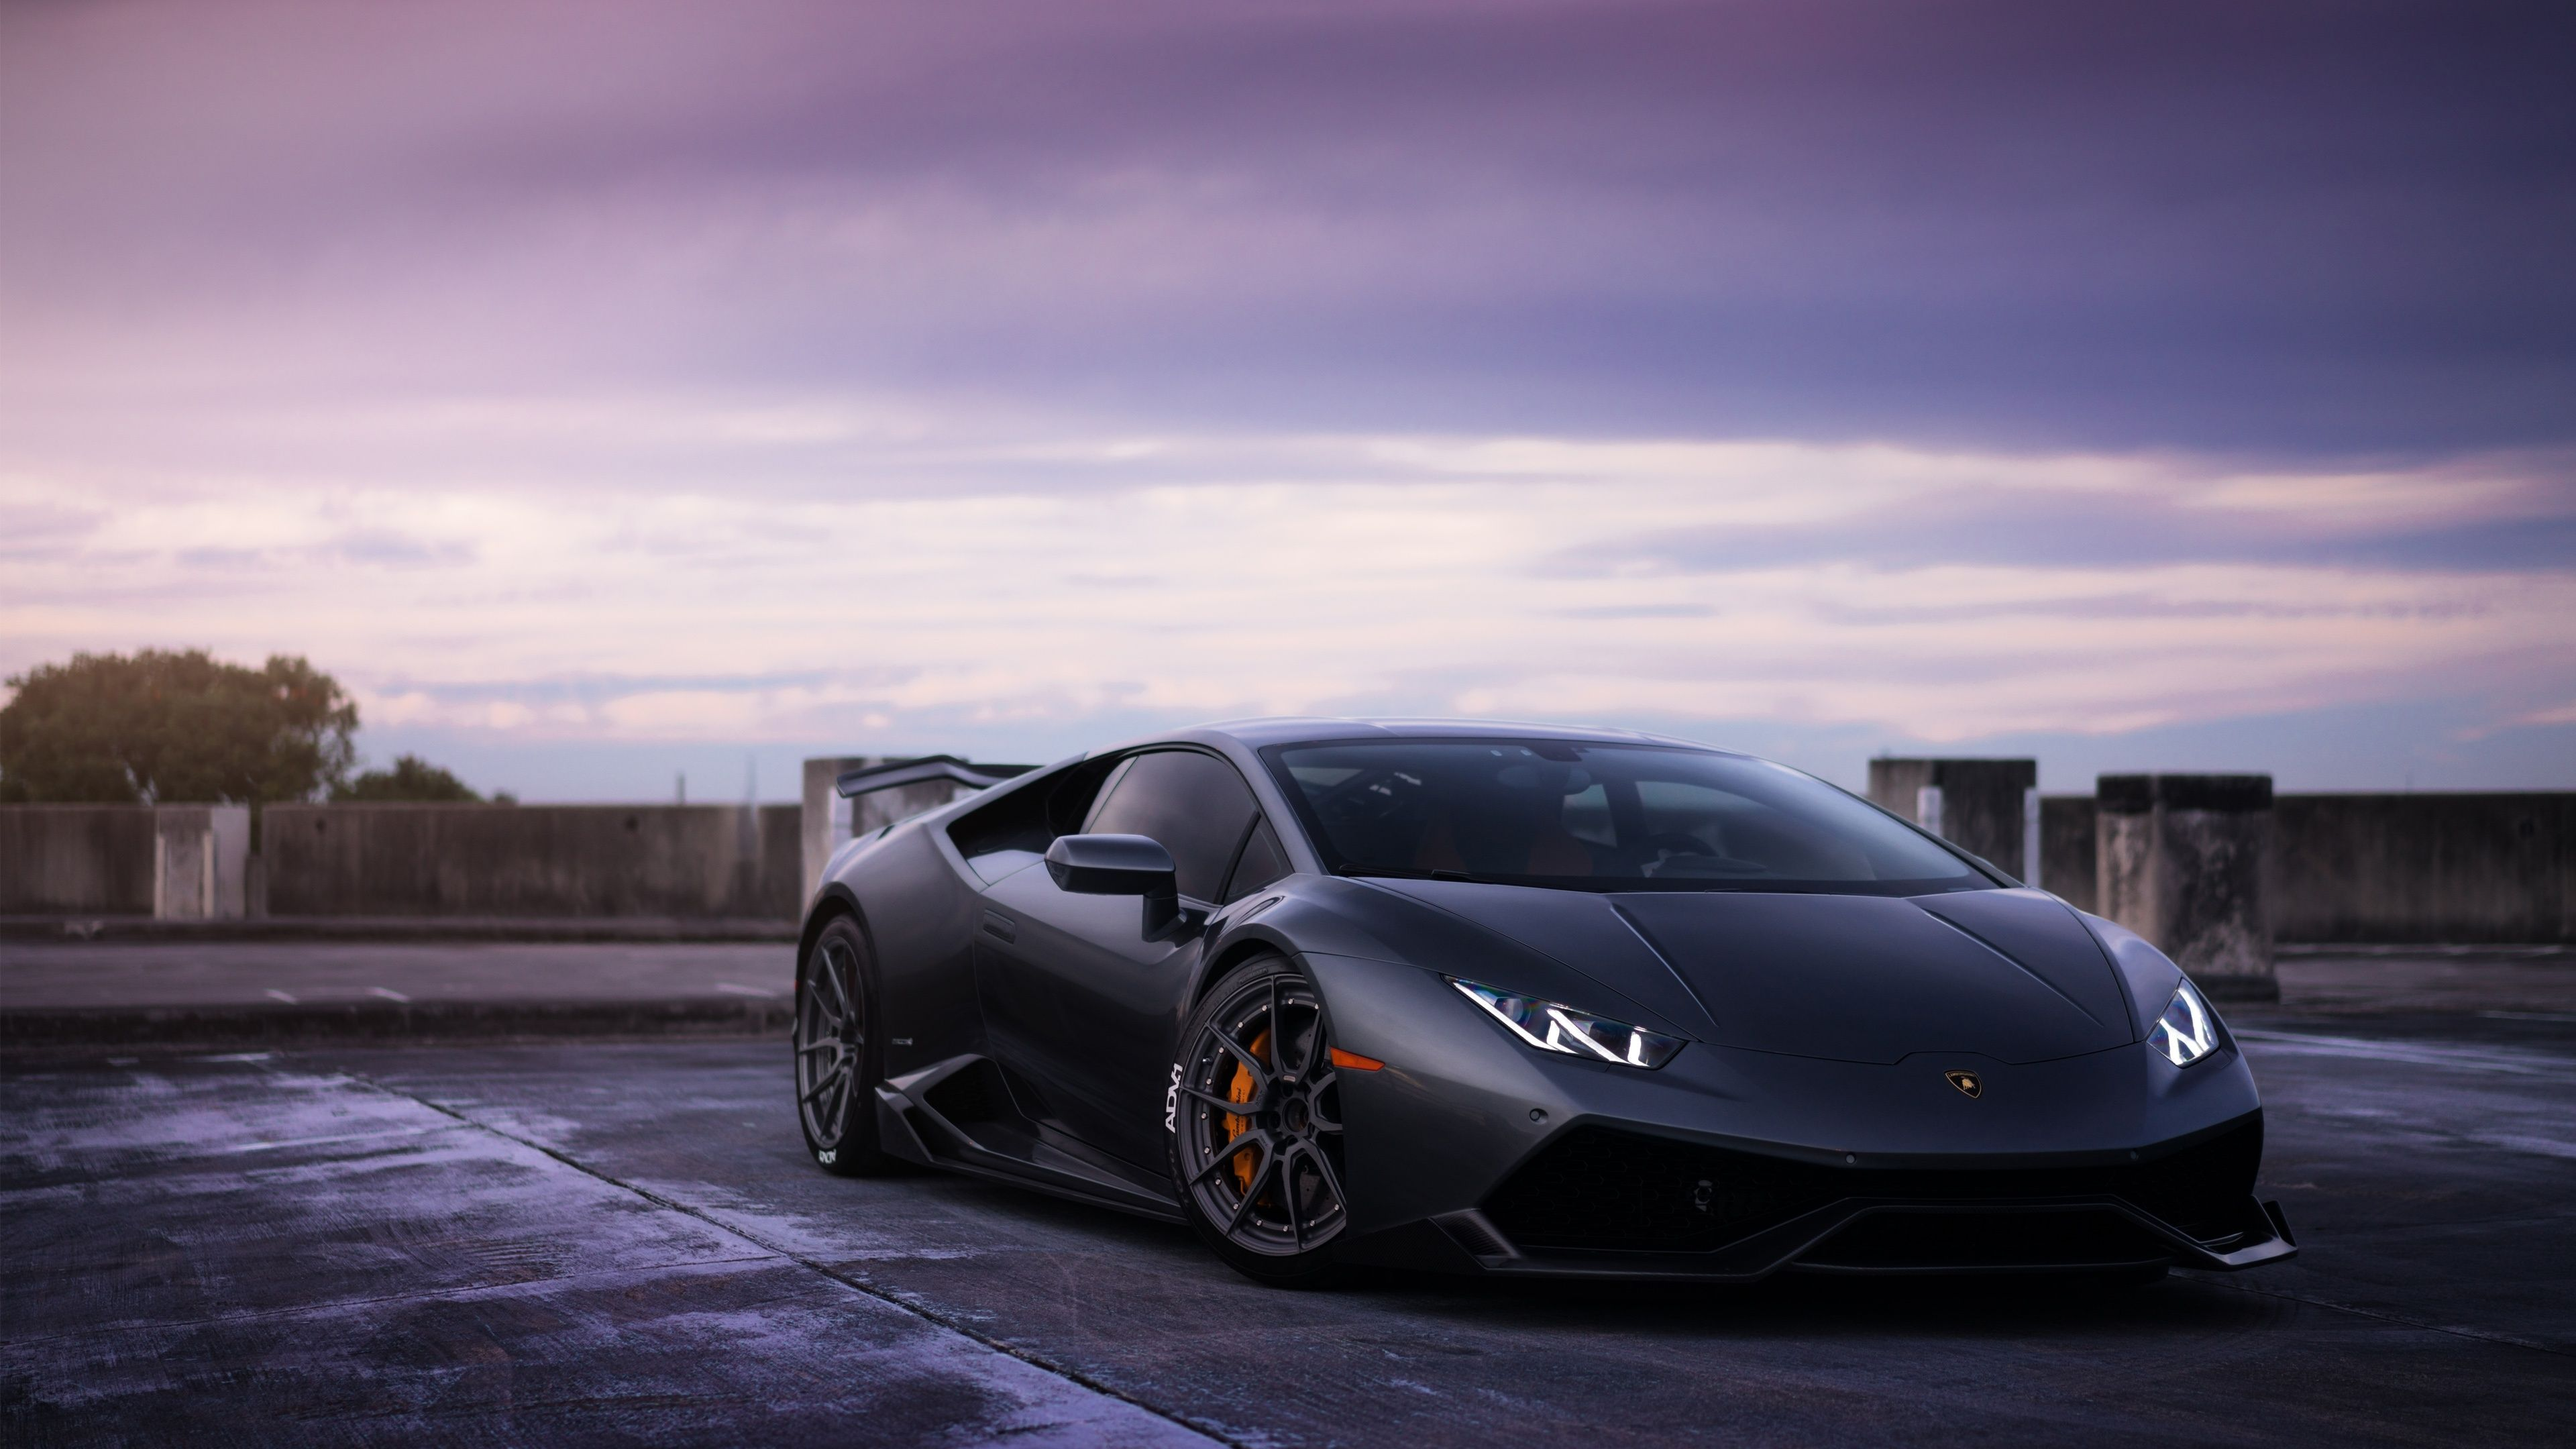 lamborghini huracan wallpapers images | vehicles wallpapers